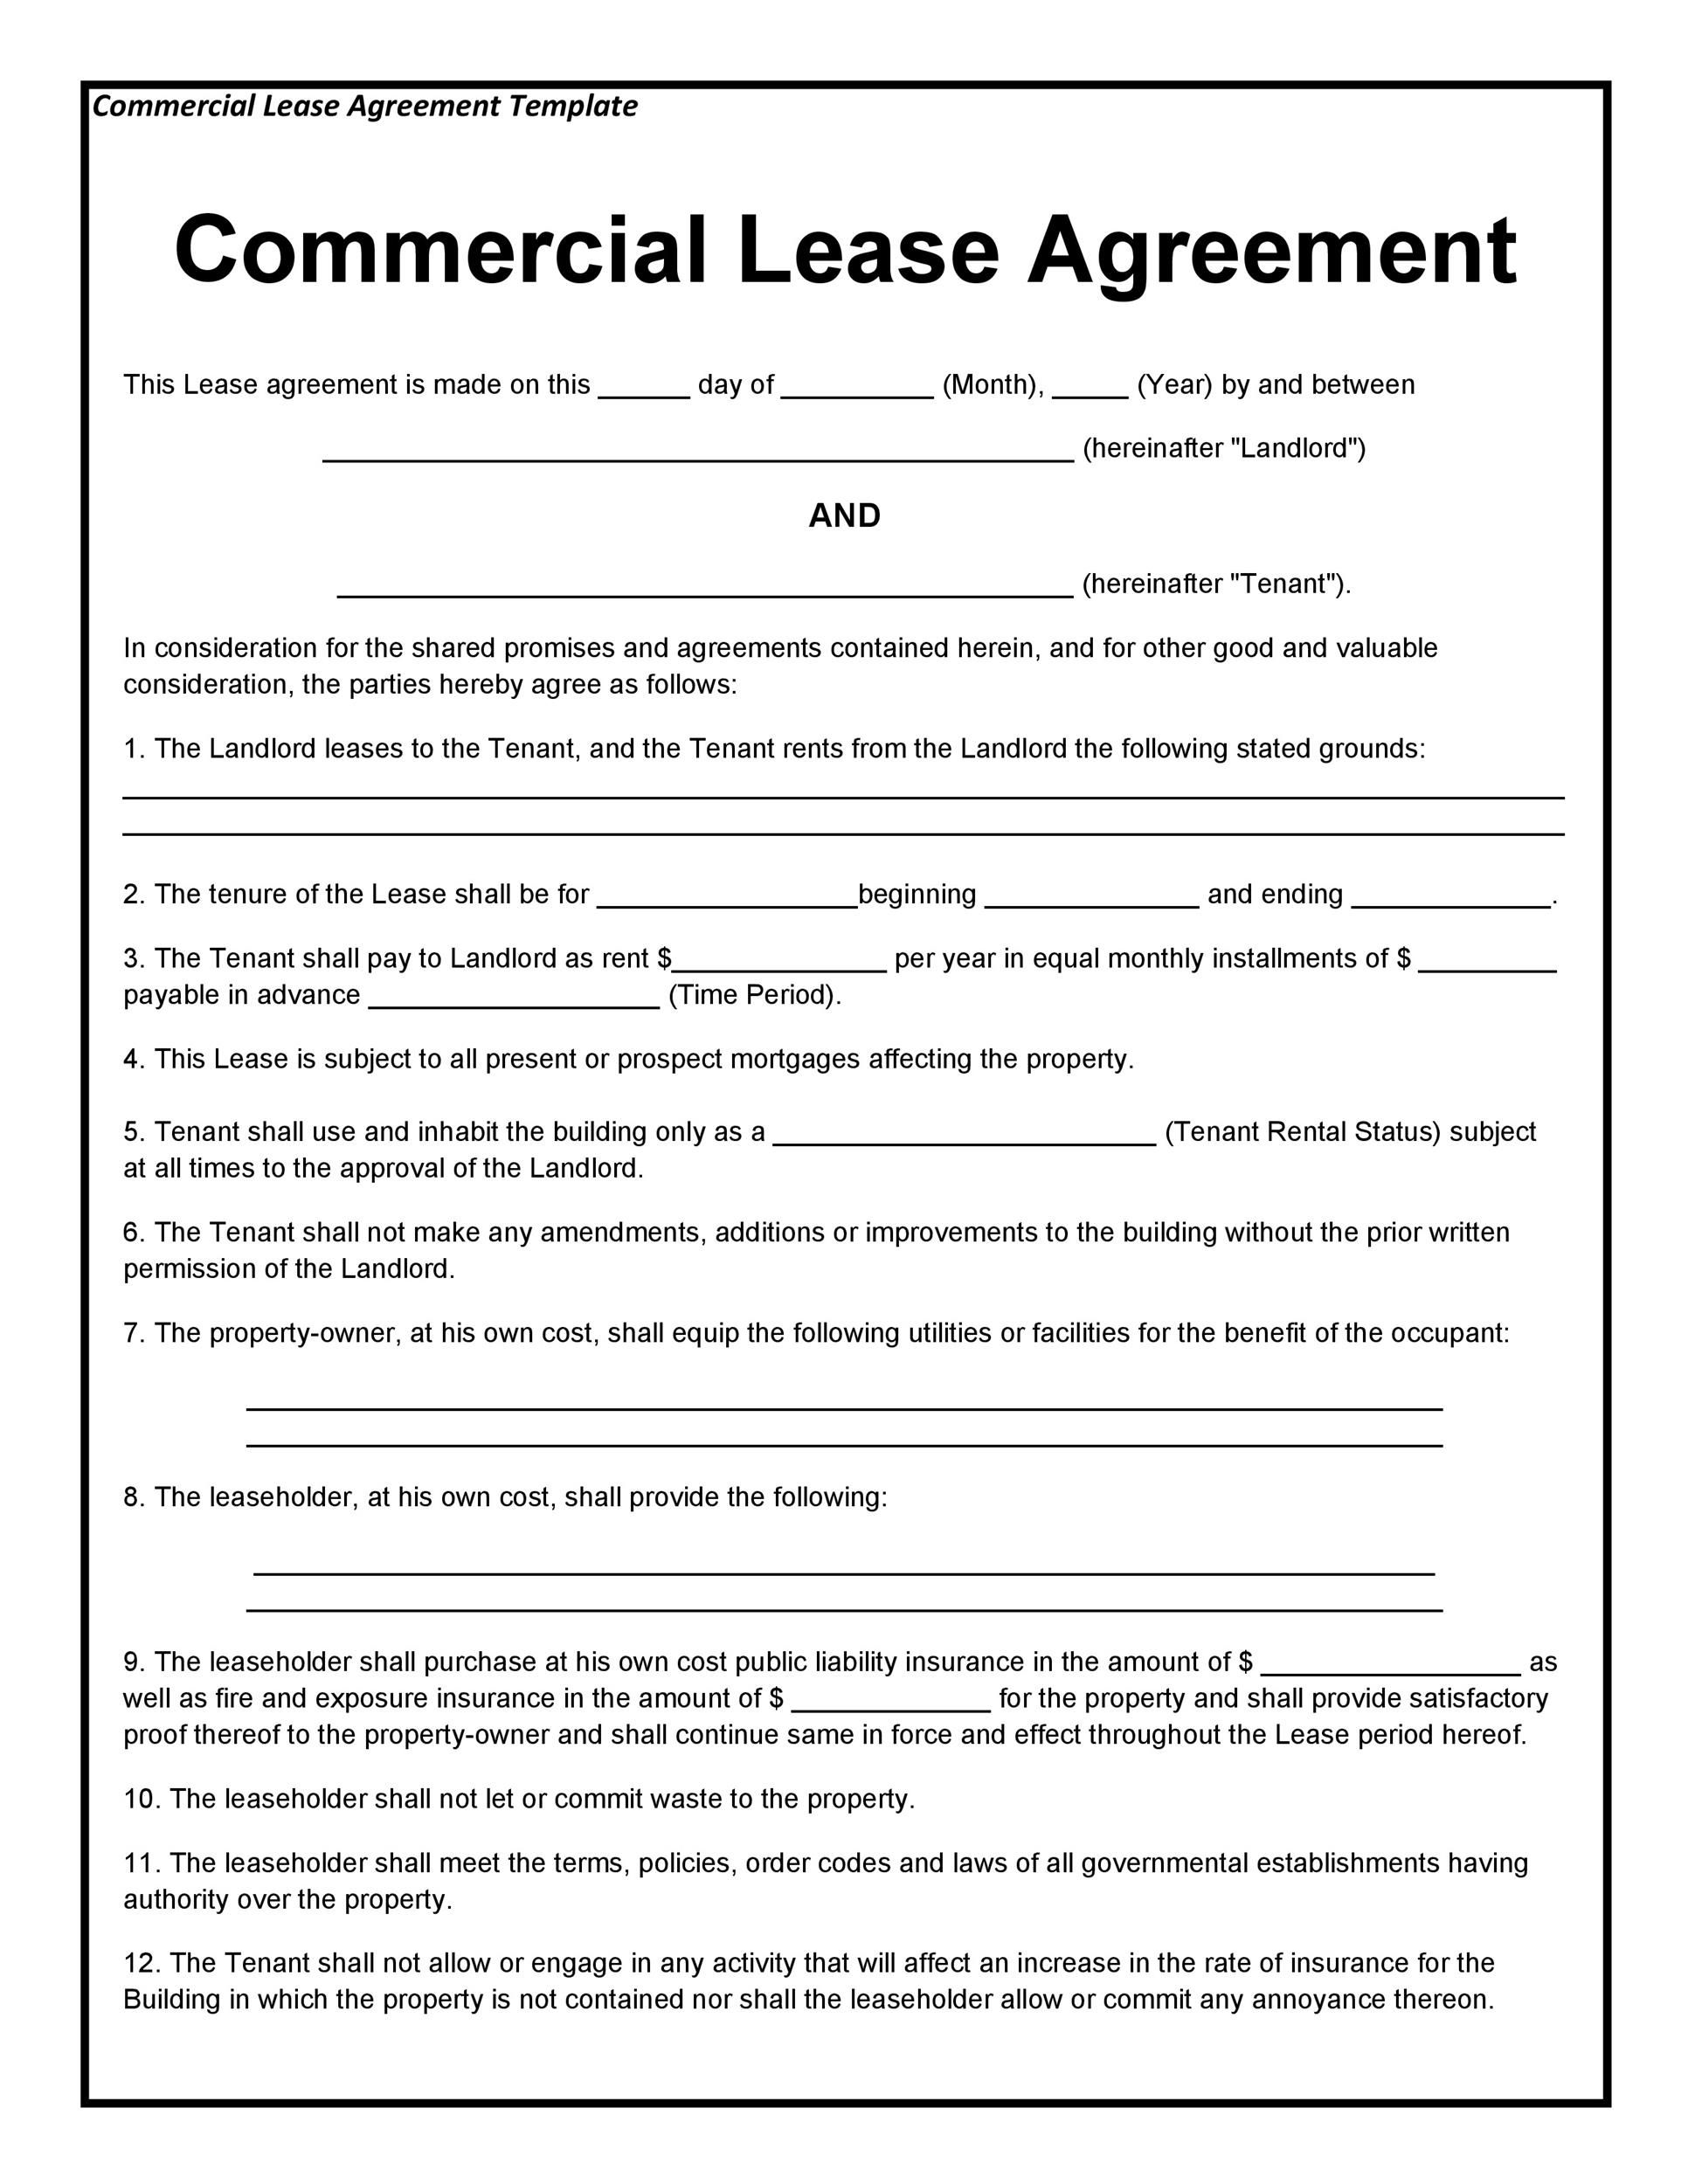 002 Fascinating Free Commercial Lease Agreement Template Australia Picture  Queensland DownloadFull